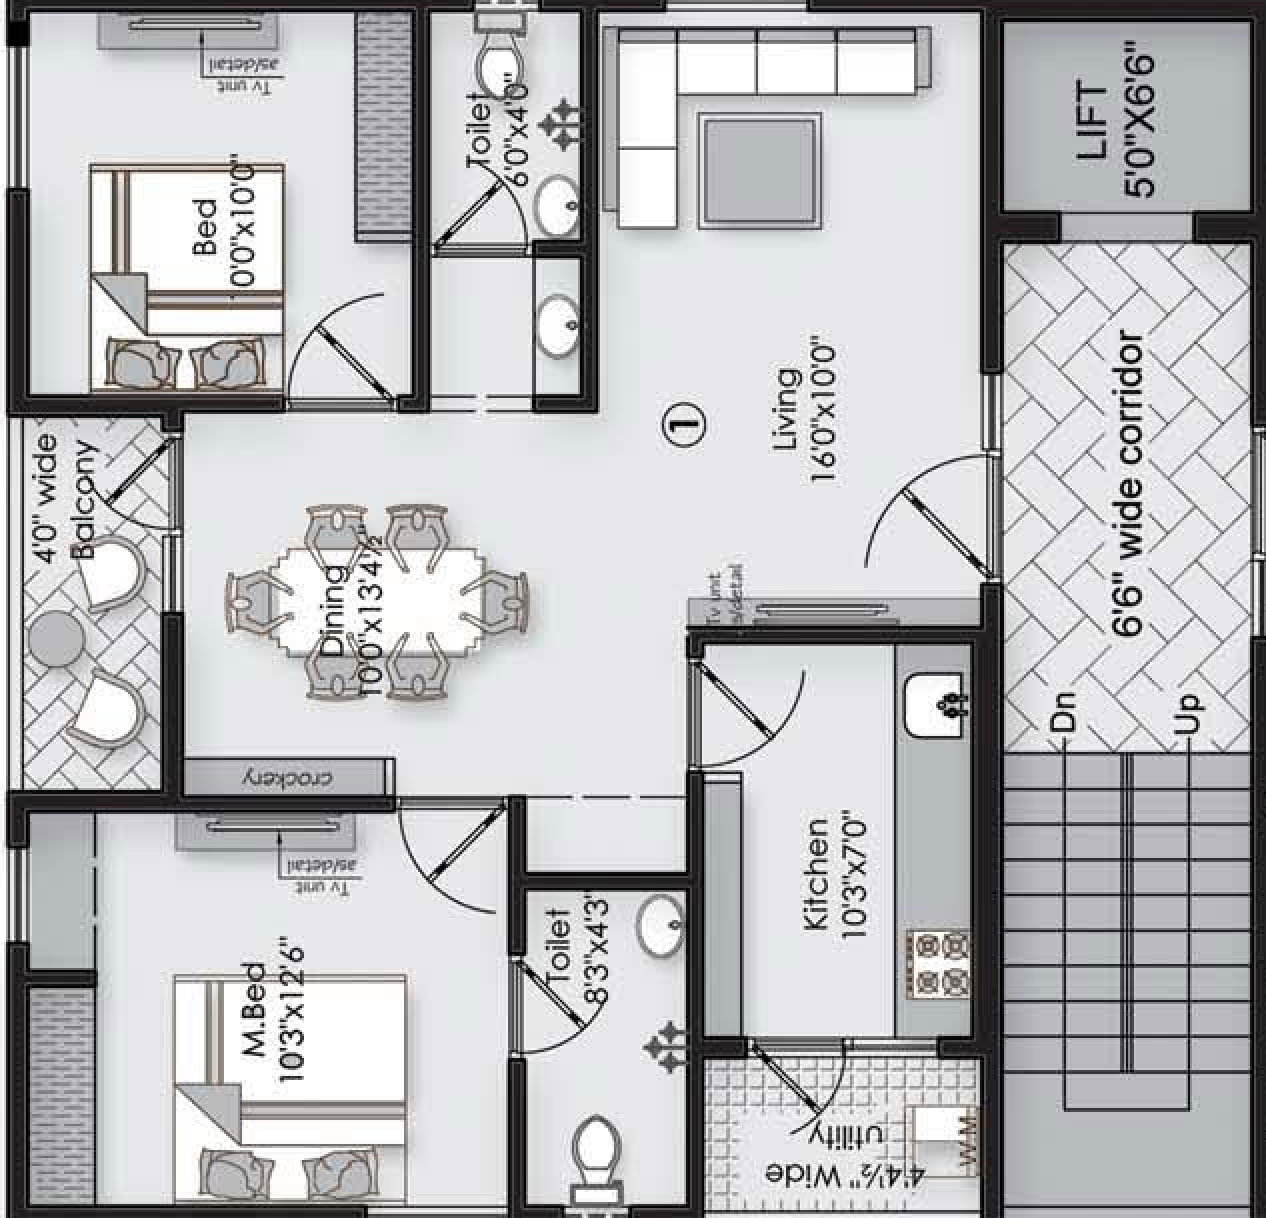 Vaishno Square floorplan 1030sqft north facing